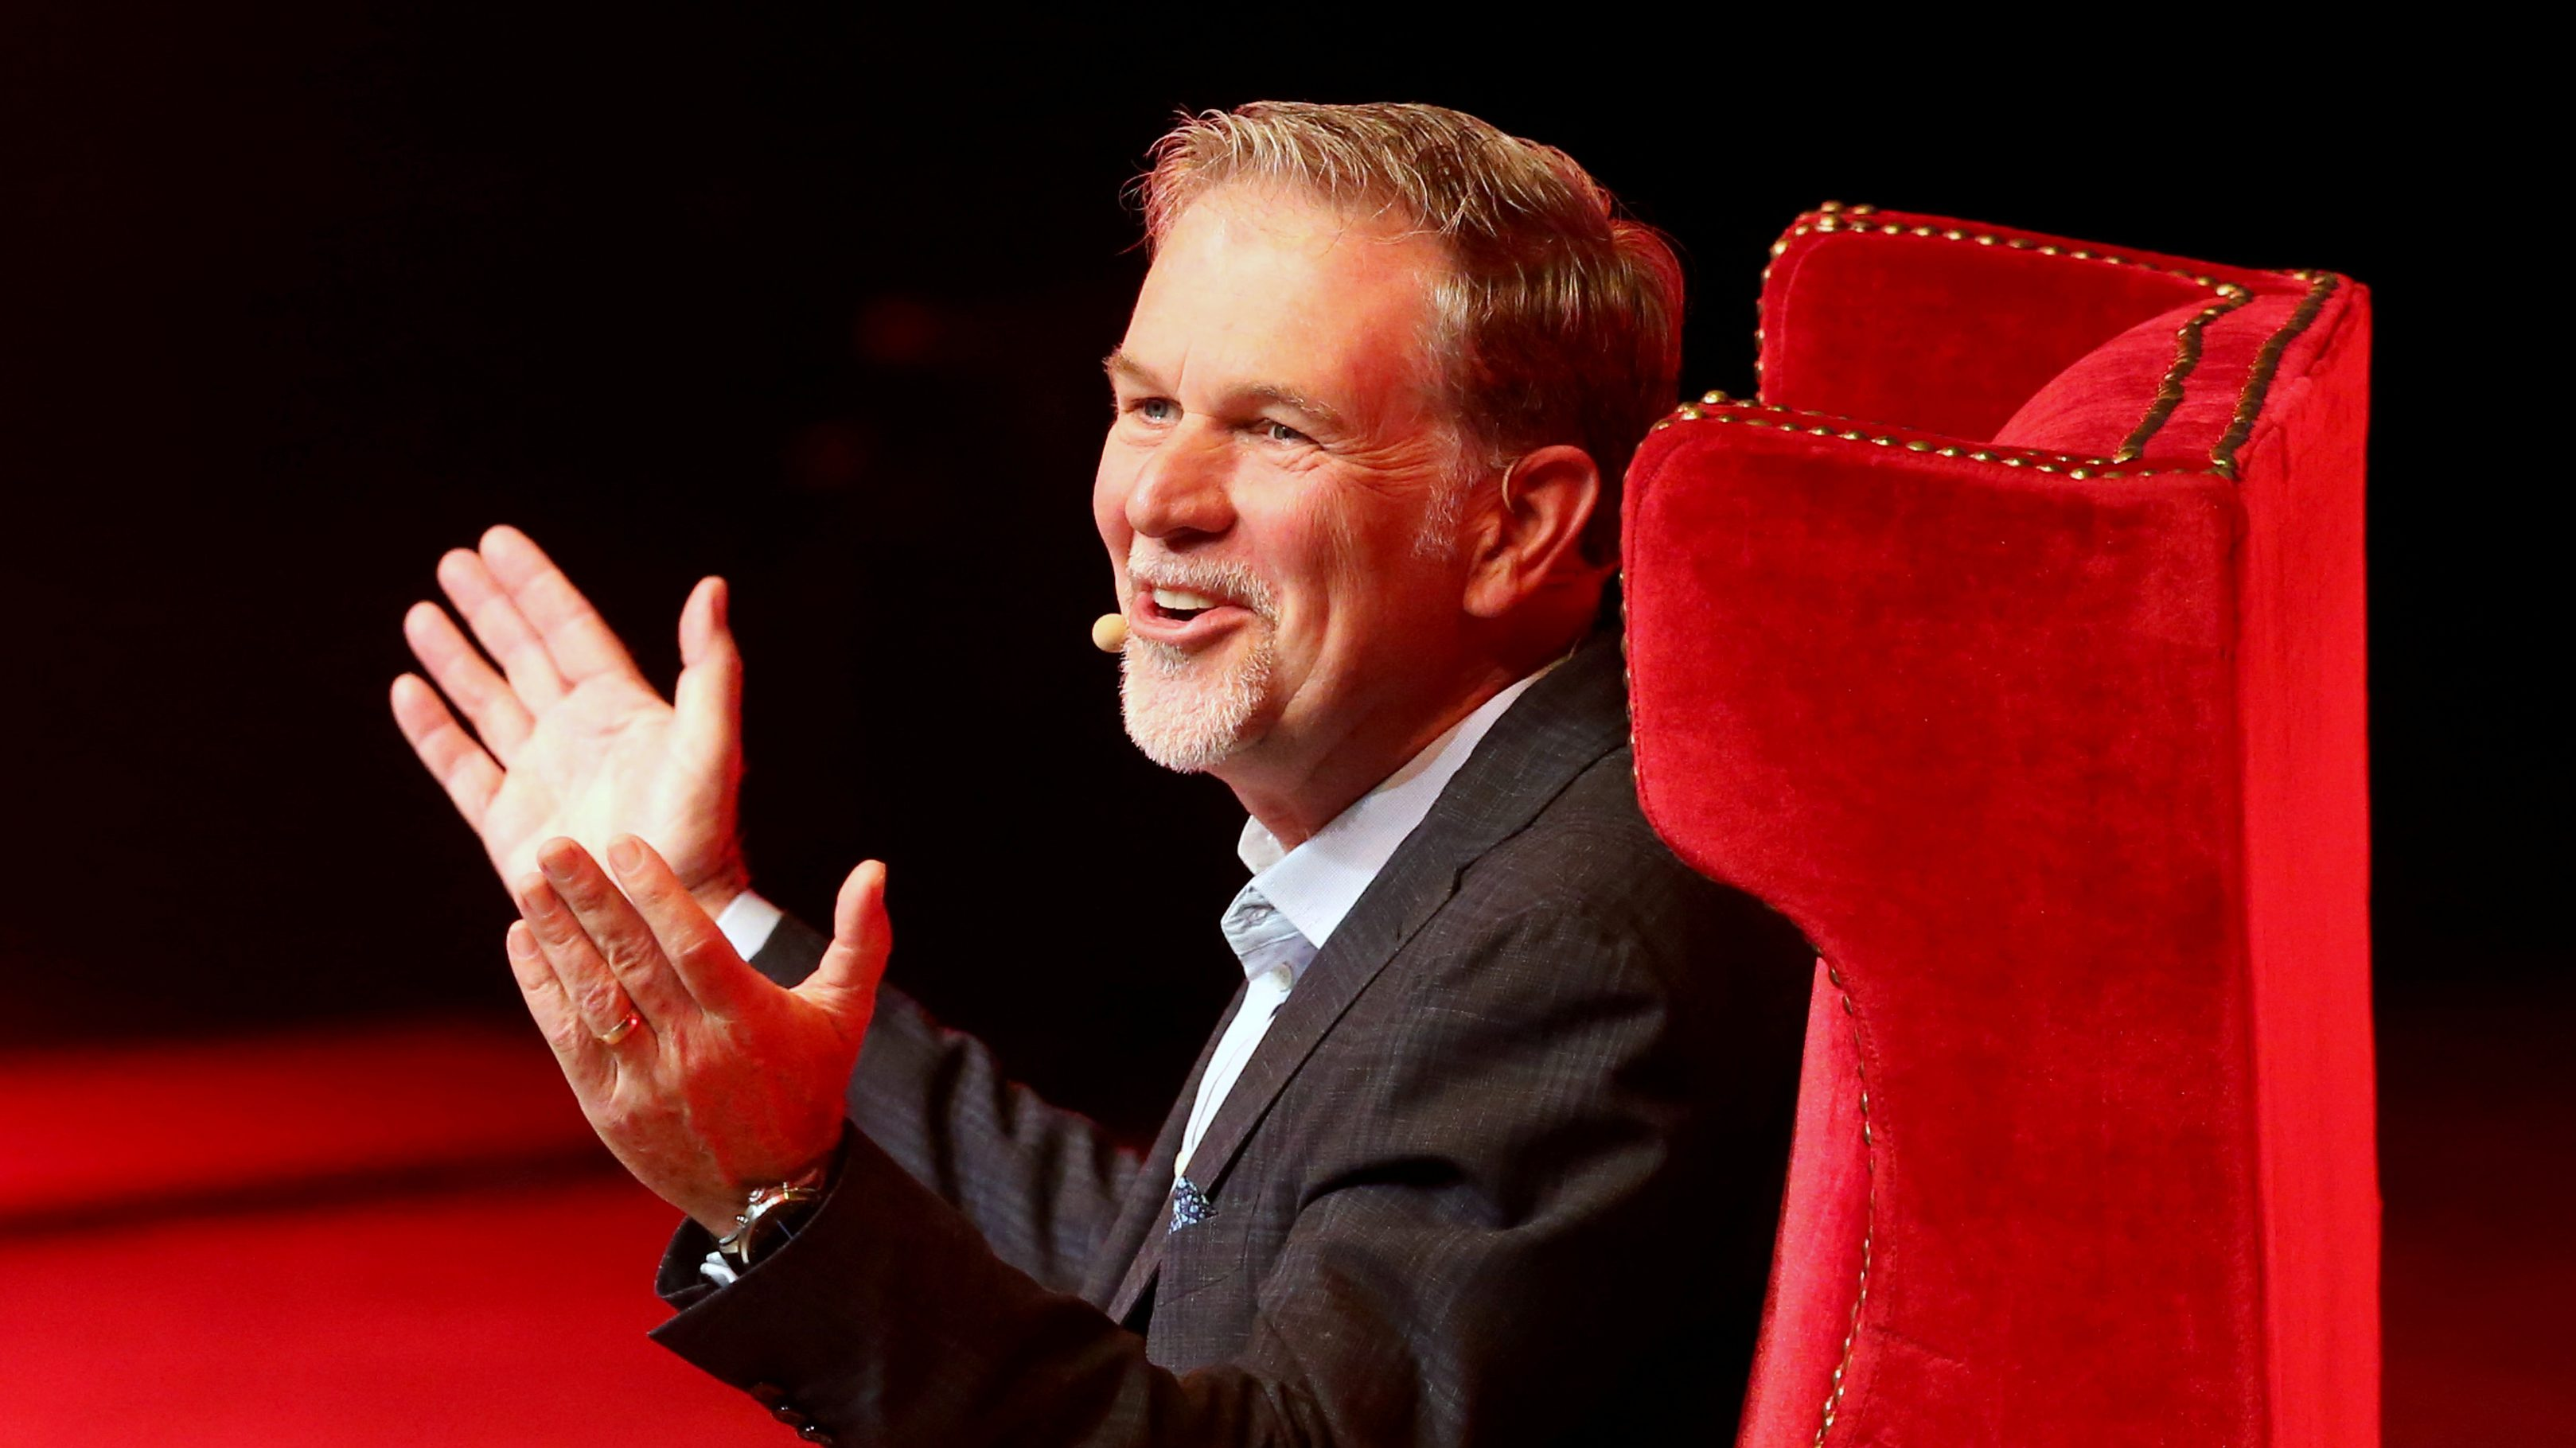 Reed Hastings, co-founder and CEO of Netflix, gestures during an event of the Fundacion Telmex Mexico Siglo XXI (Telmex Foundation Mexico XXI Century) in Mexico City, Mexico, September 6, 2019.